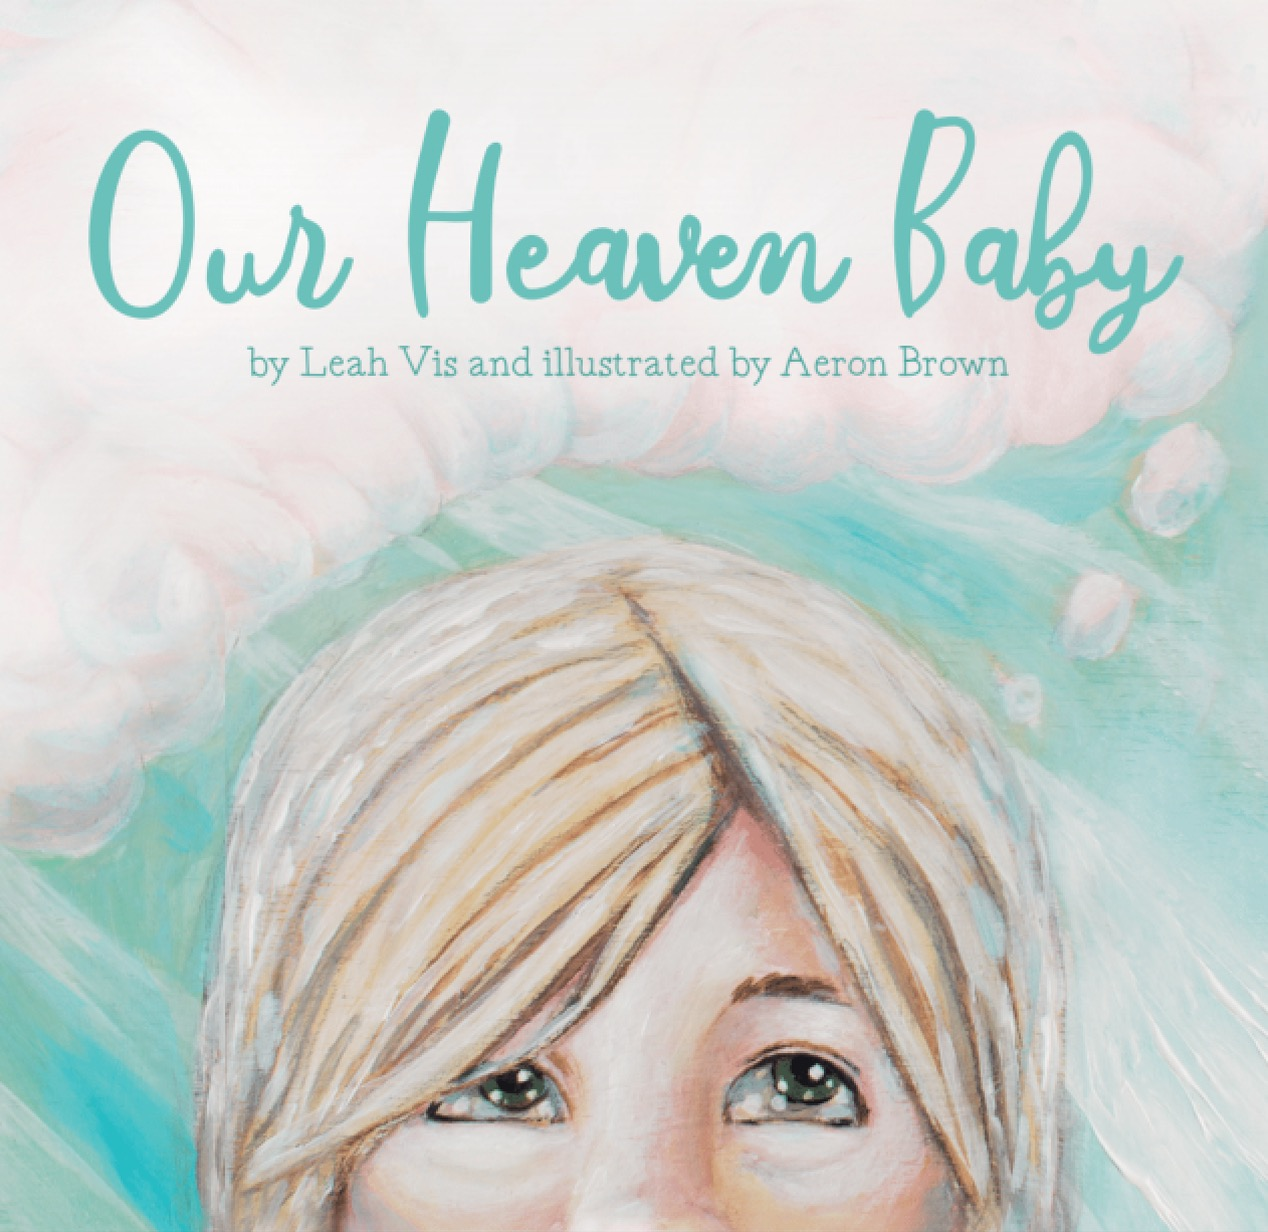 Our Heaven Baby by Leah Vis.jpeg